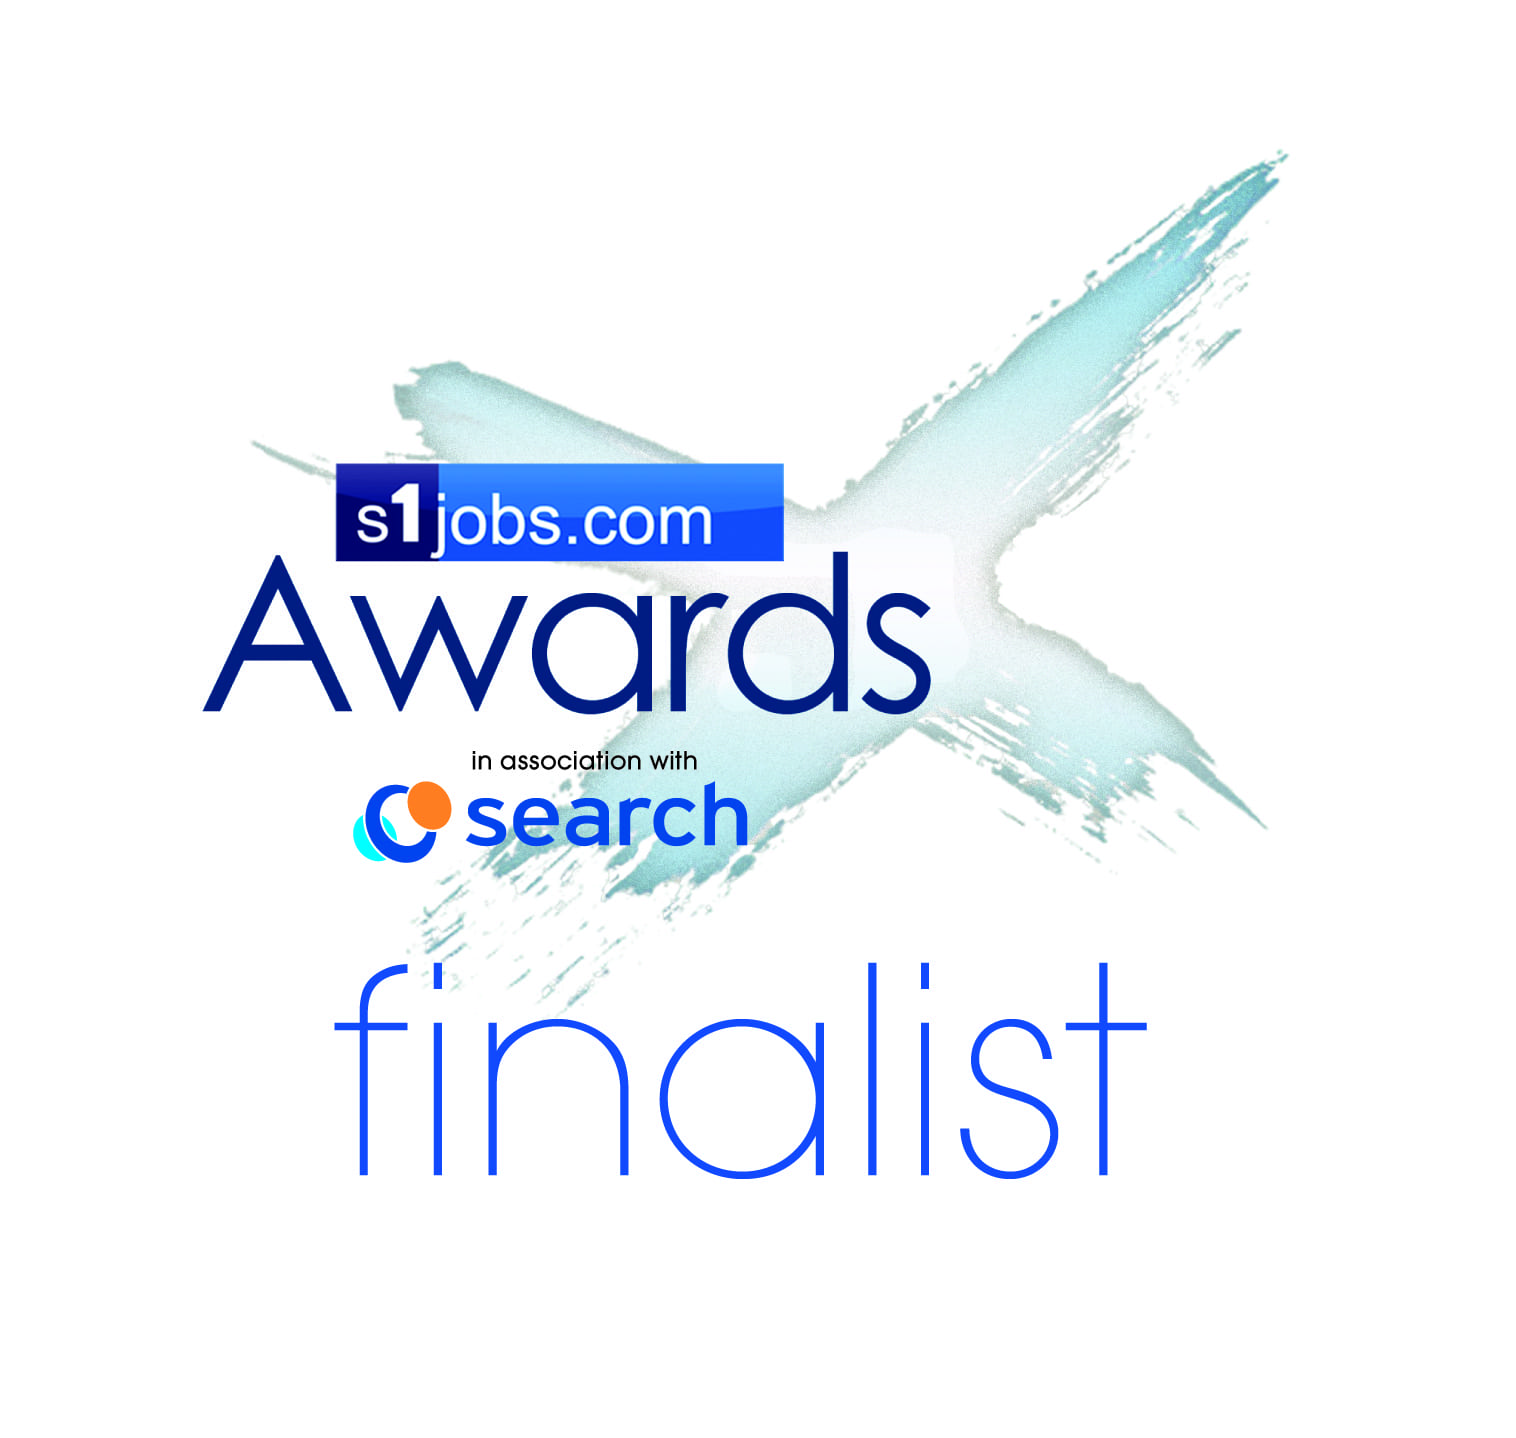 S1 job awards